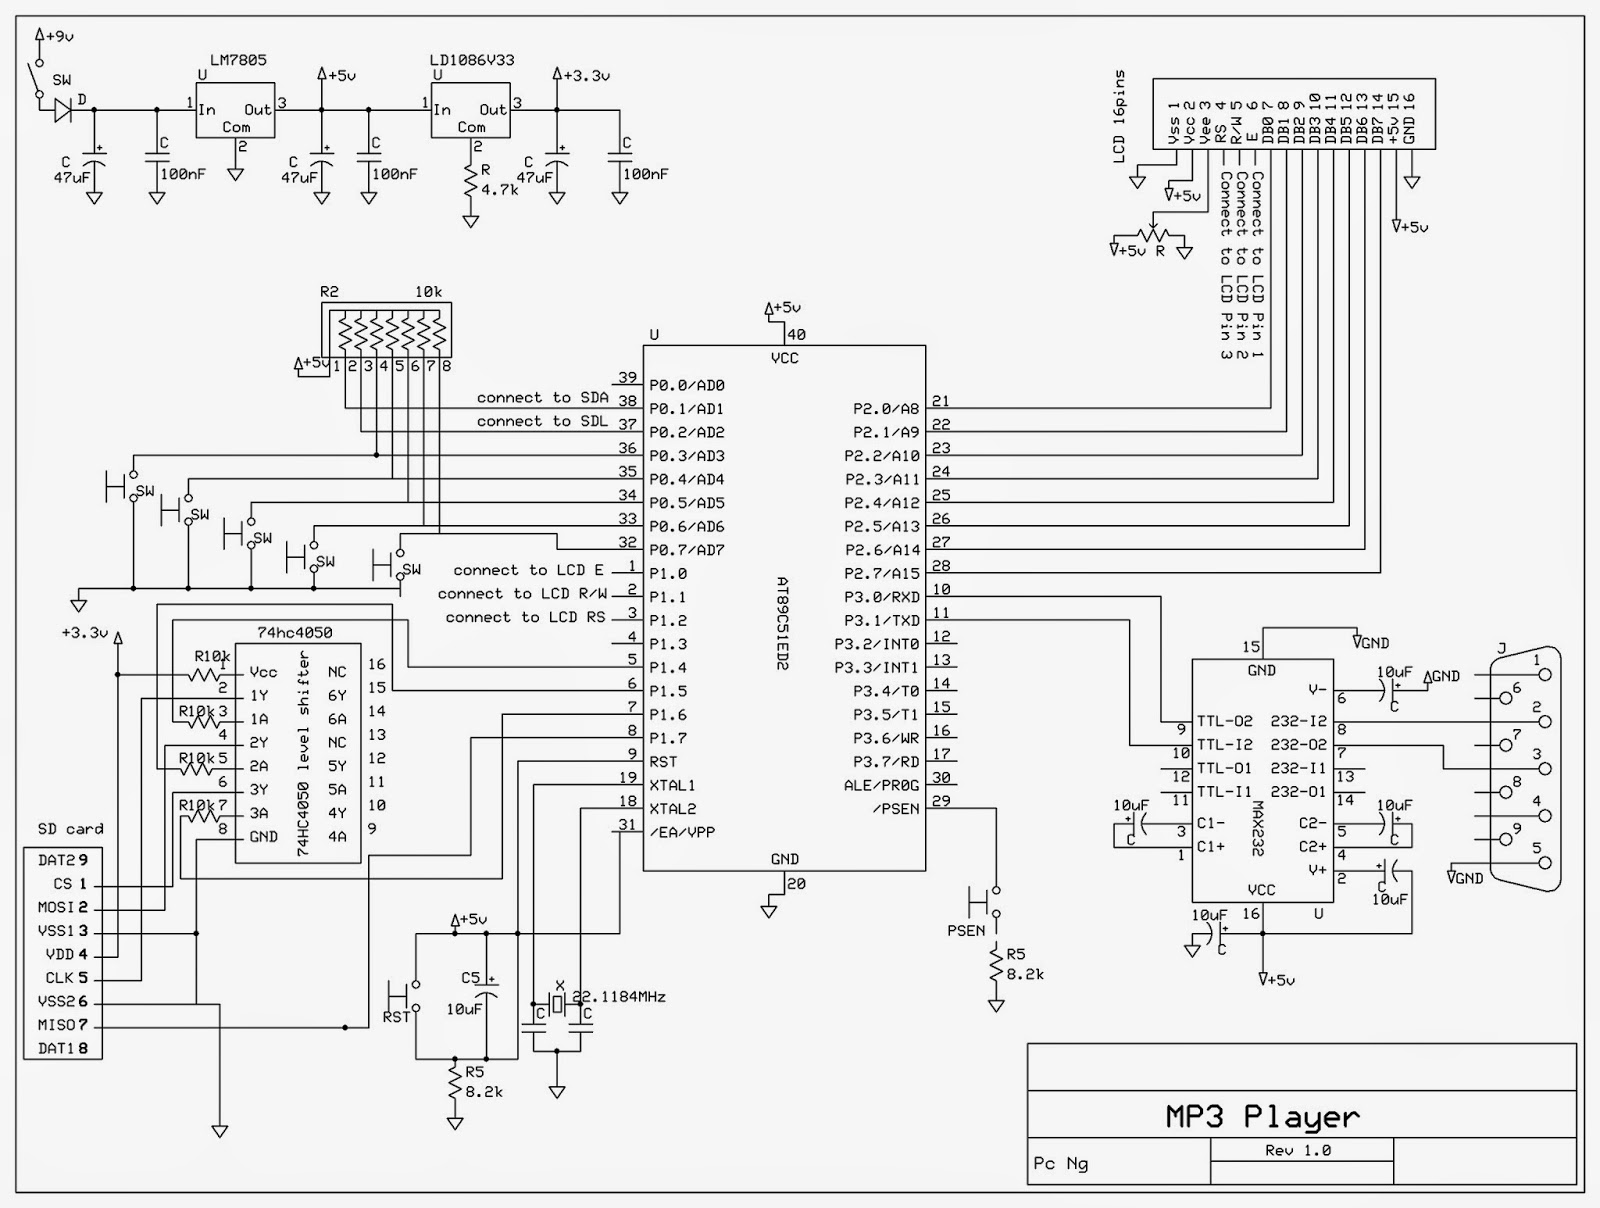 P1 Engineering Schematics Wiring Diagram Portal Wow Incredible Vision To Be Inspired Or Mcu Project Rh Seeingincrediblevision Blogspot Com Shcematics Us